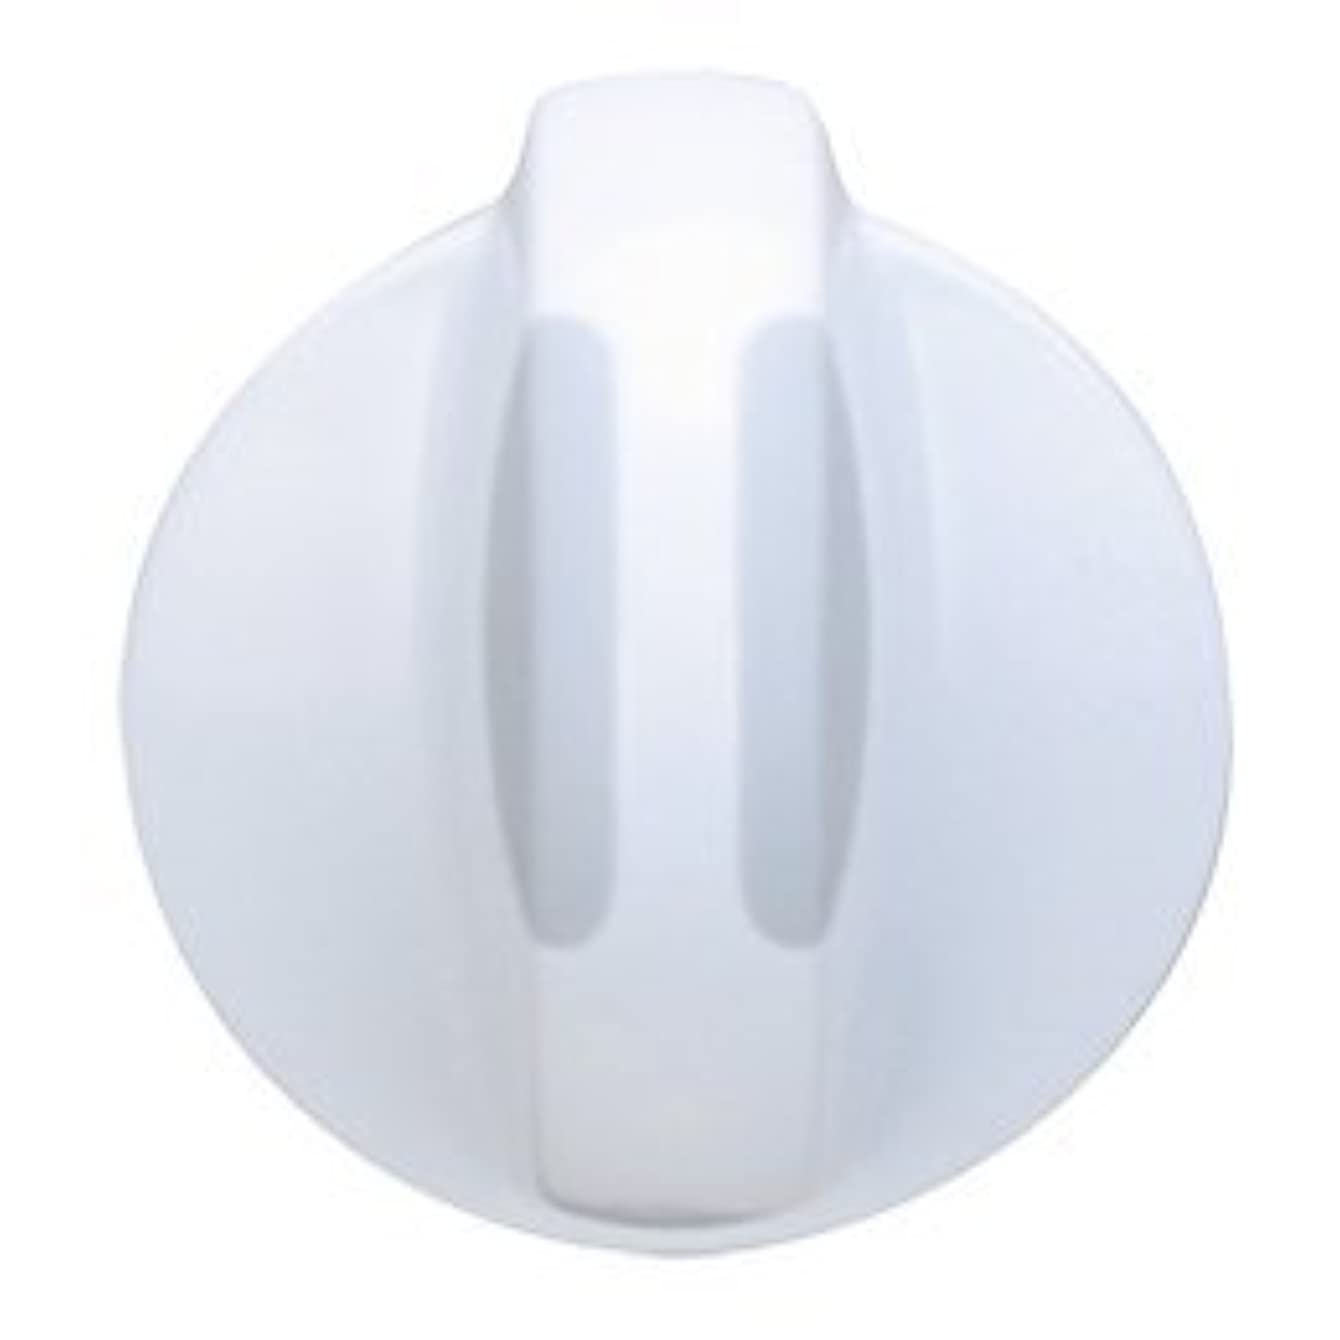 134844470 For Frigidaire Washer Selector Knob, White